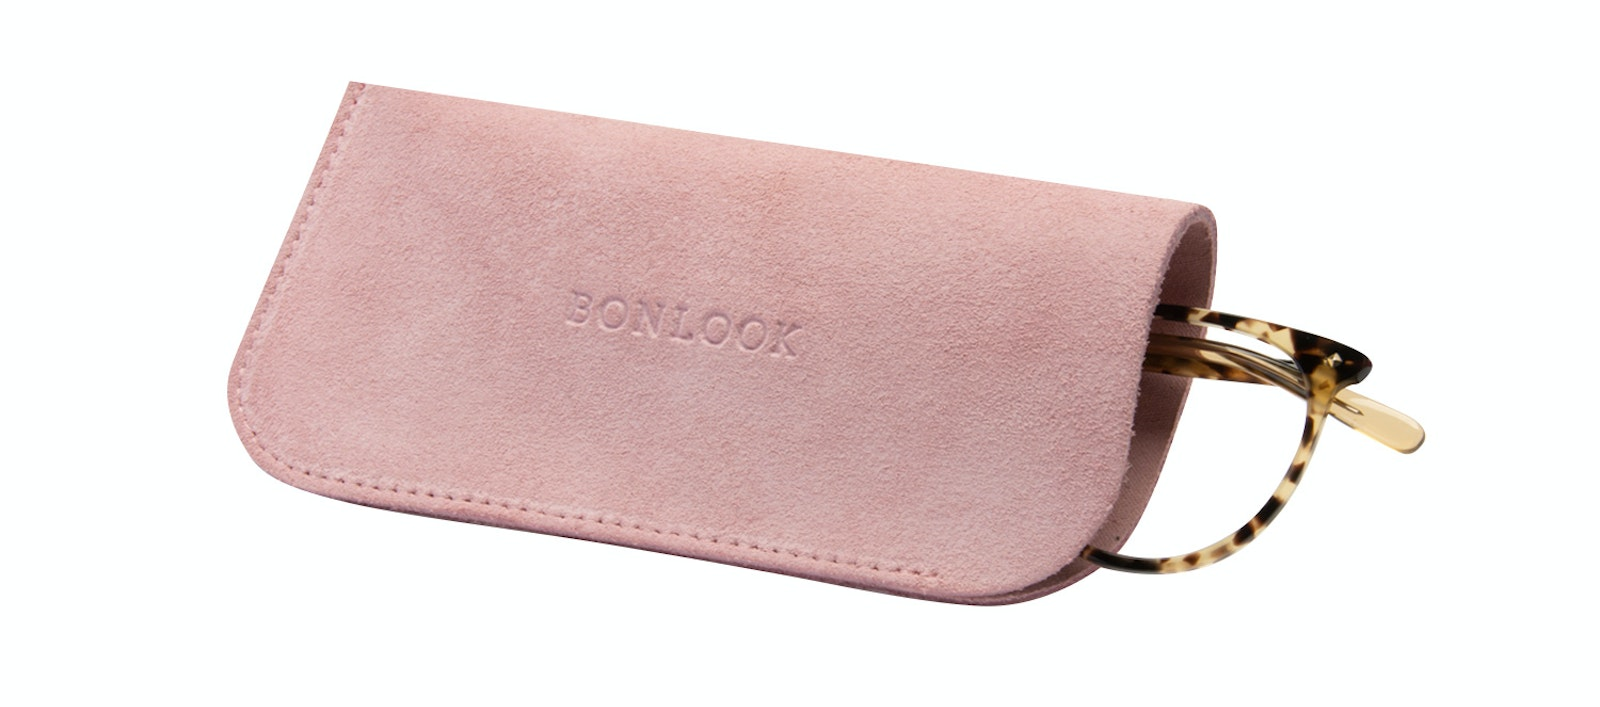 Affordable Fashion Glasses Accessory Men Women Sleeve Case  Pink Suede Tilt